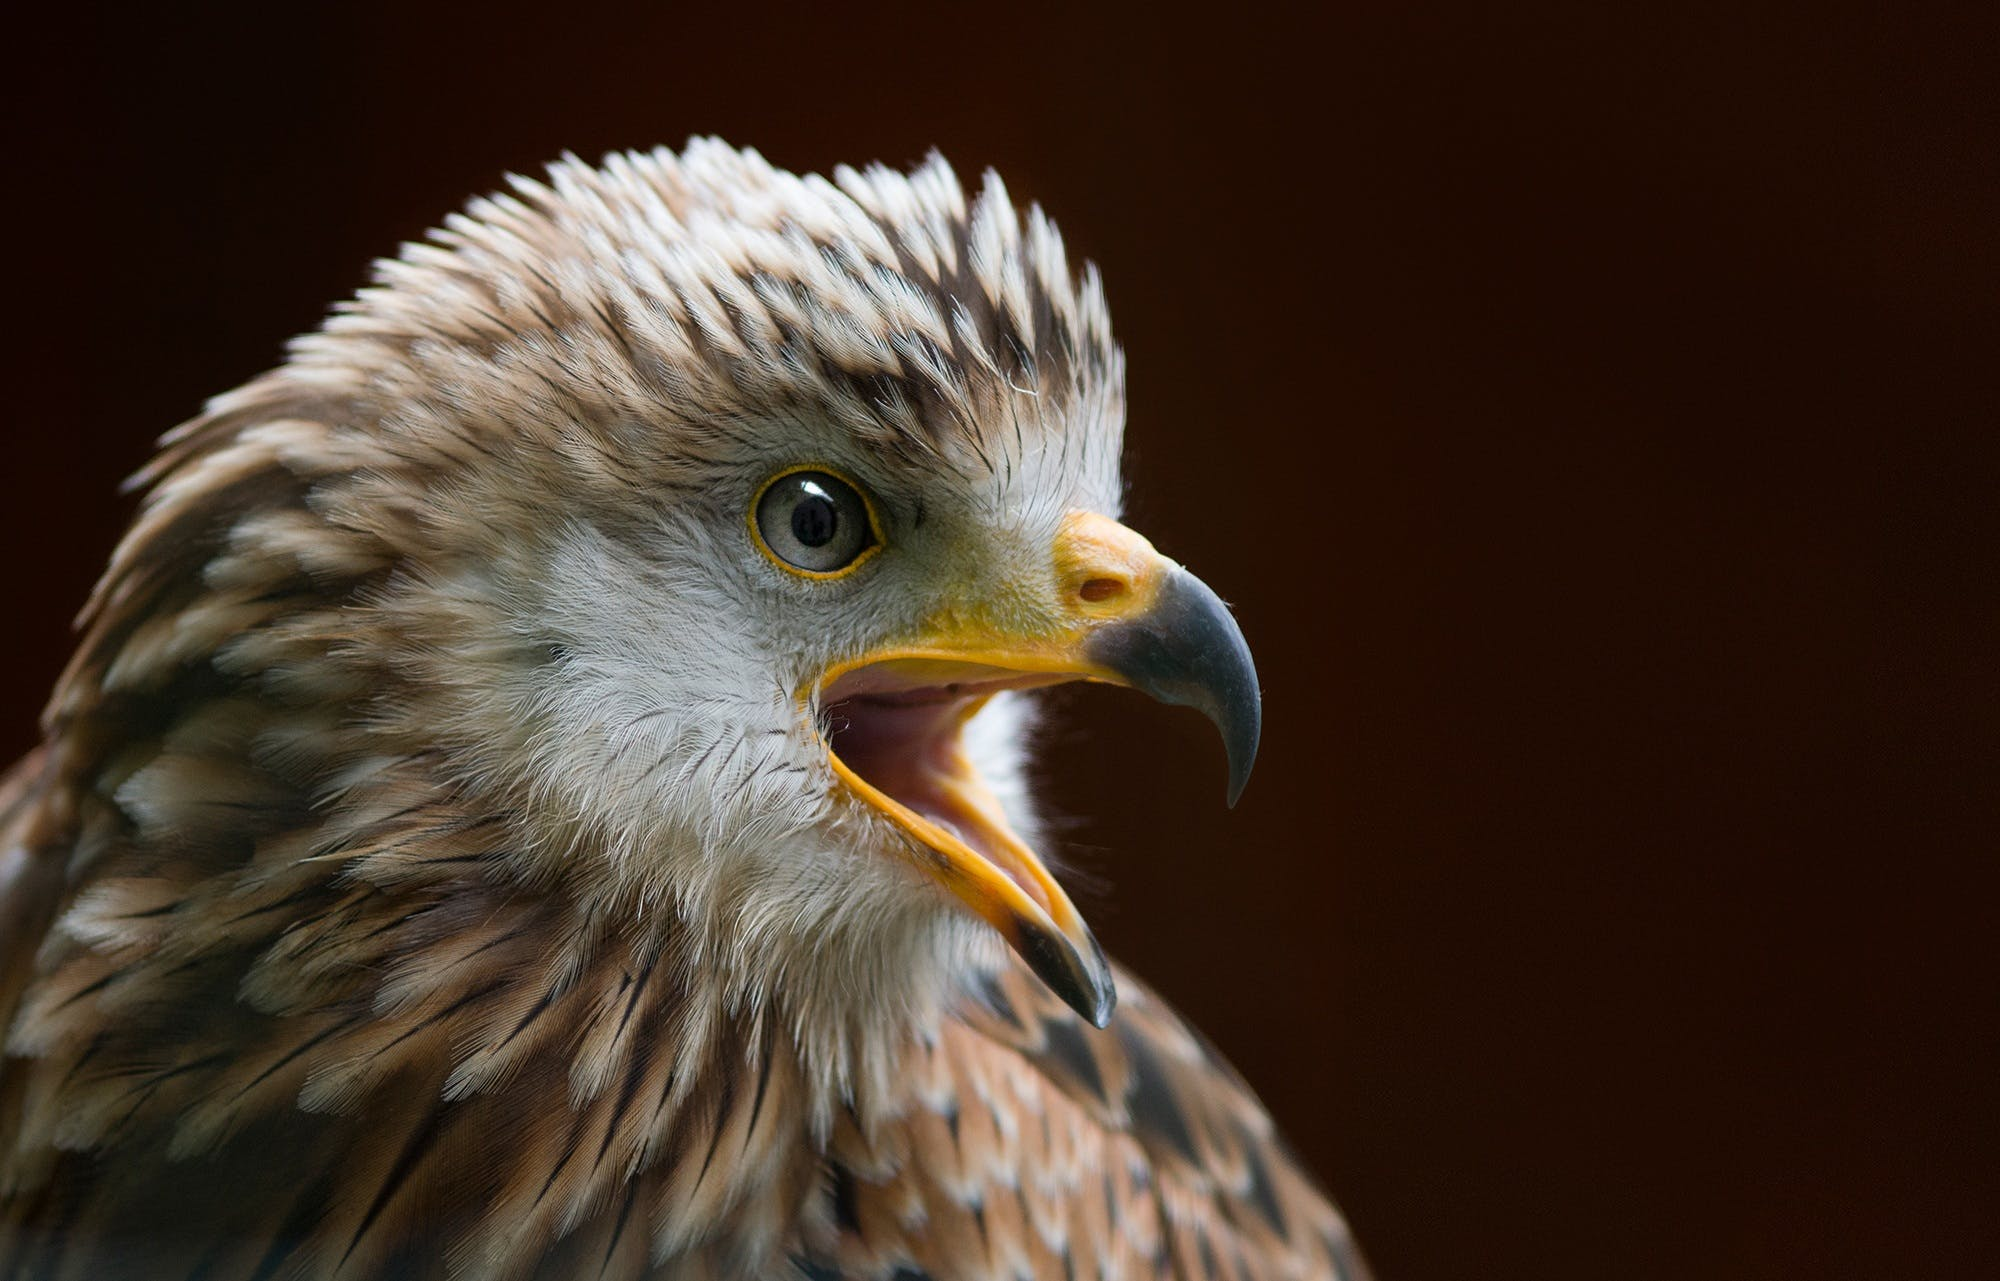 Free stock photo of bird, animal, bald eagle, beak